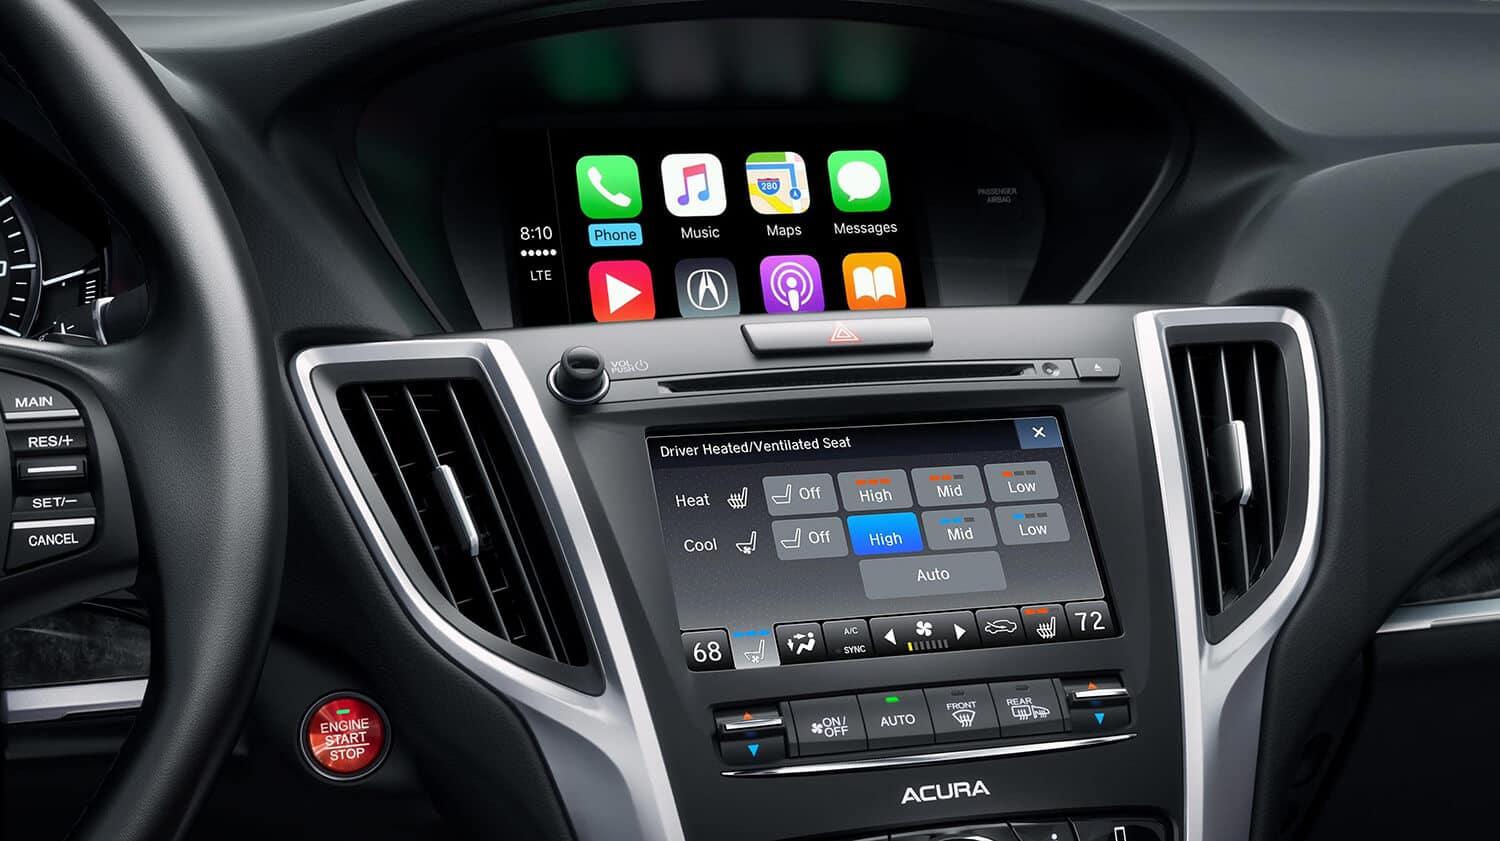 2020 Acura TLX Interior On Demand Multi-Use Display